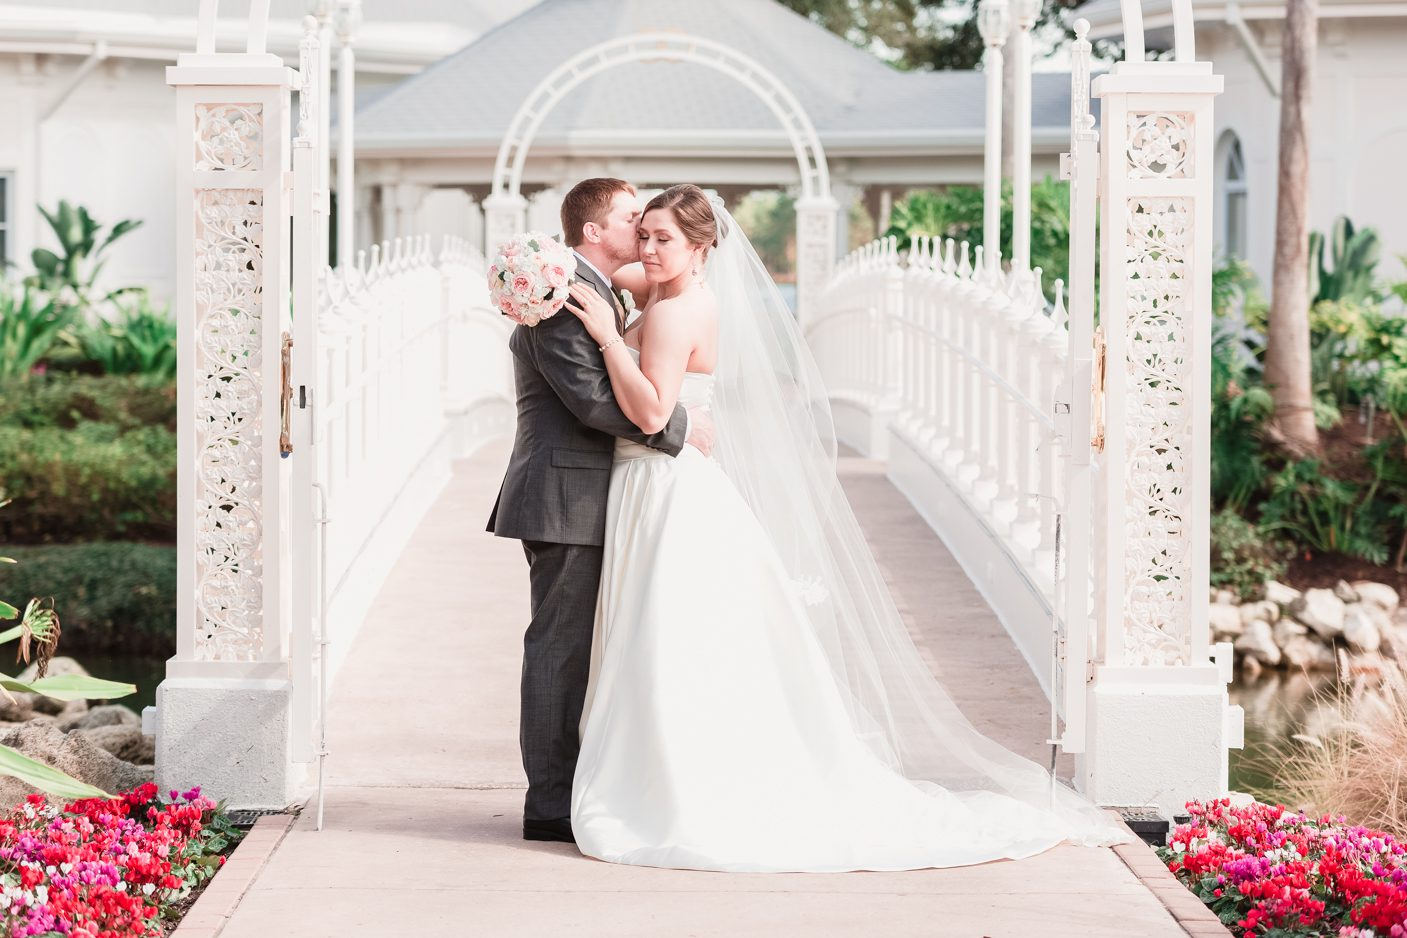 Disney bride and groom in front of the wedding pavilion in Orlando